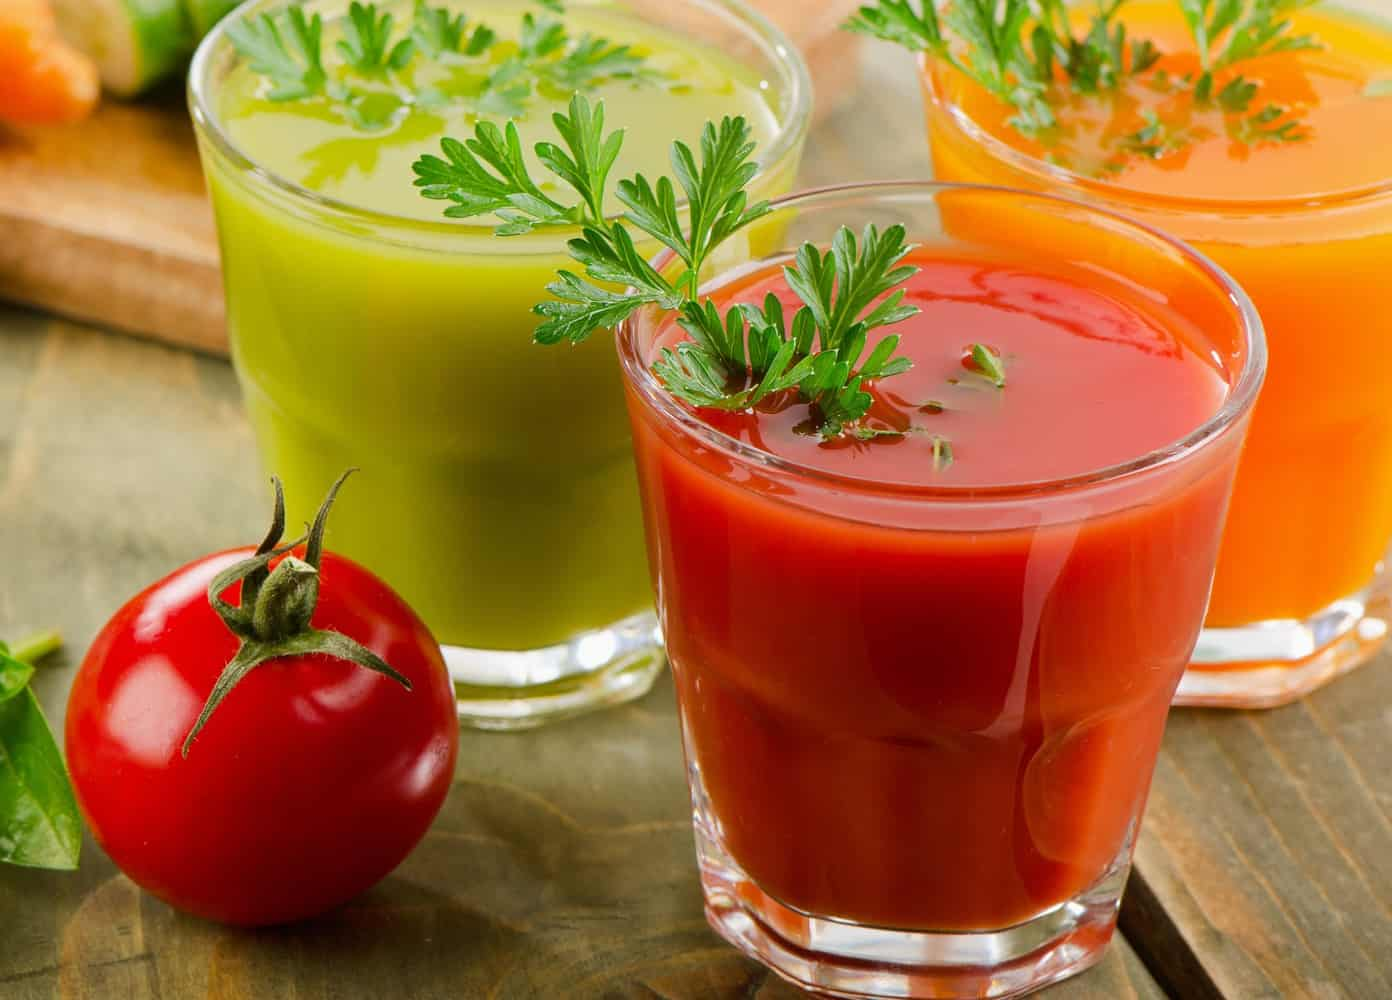 Glasses of green and red tomato juice.